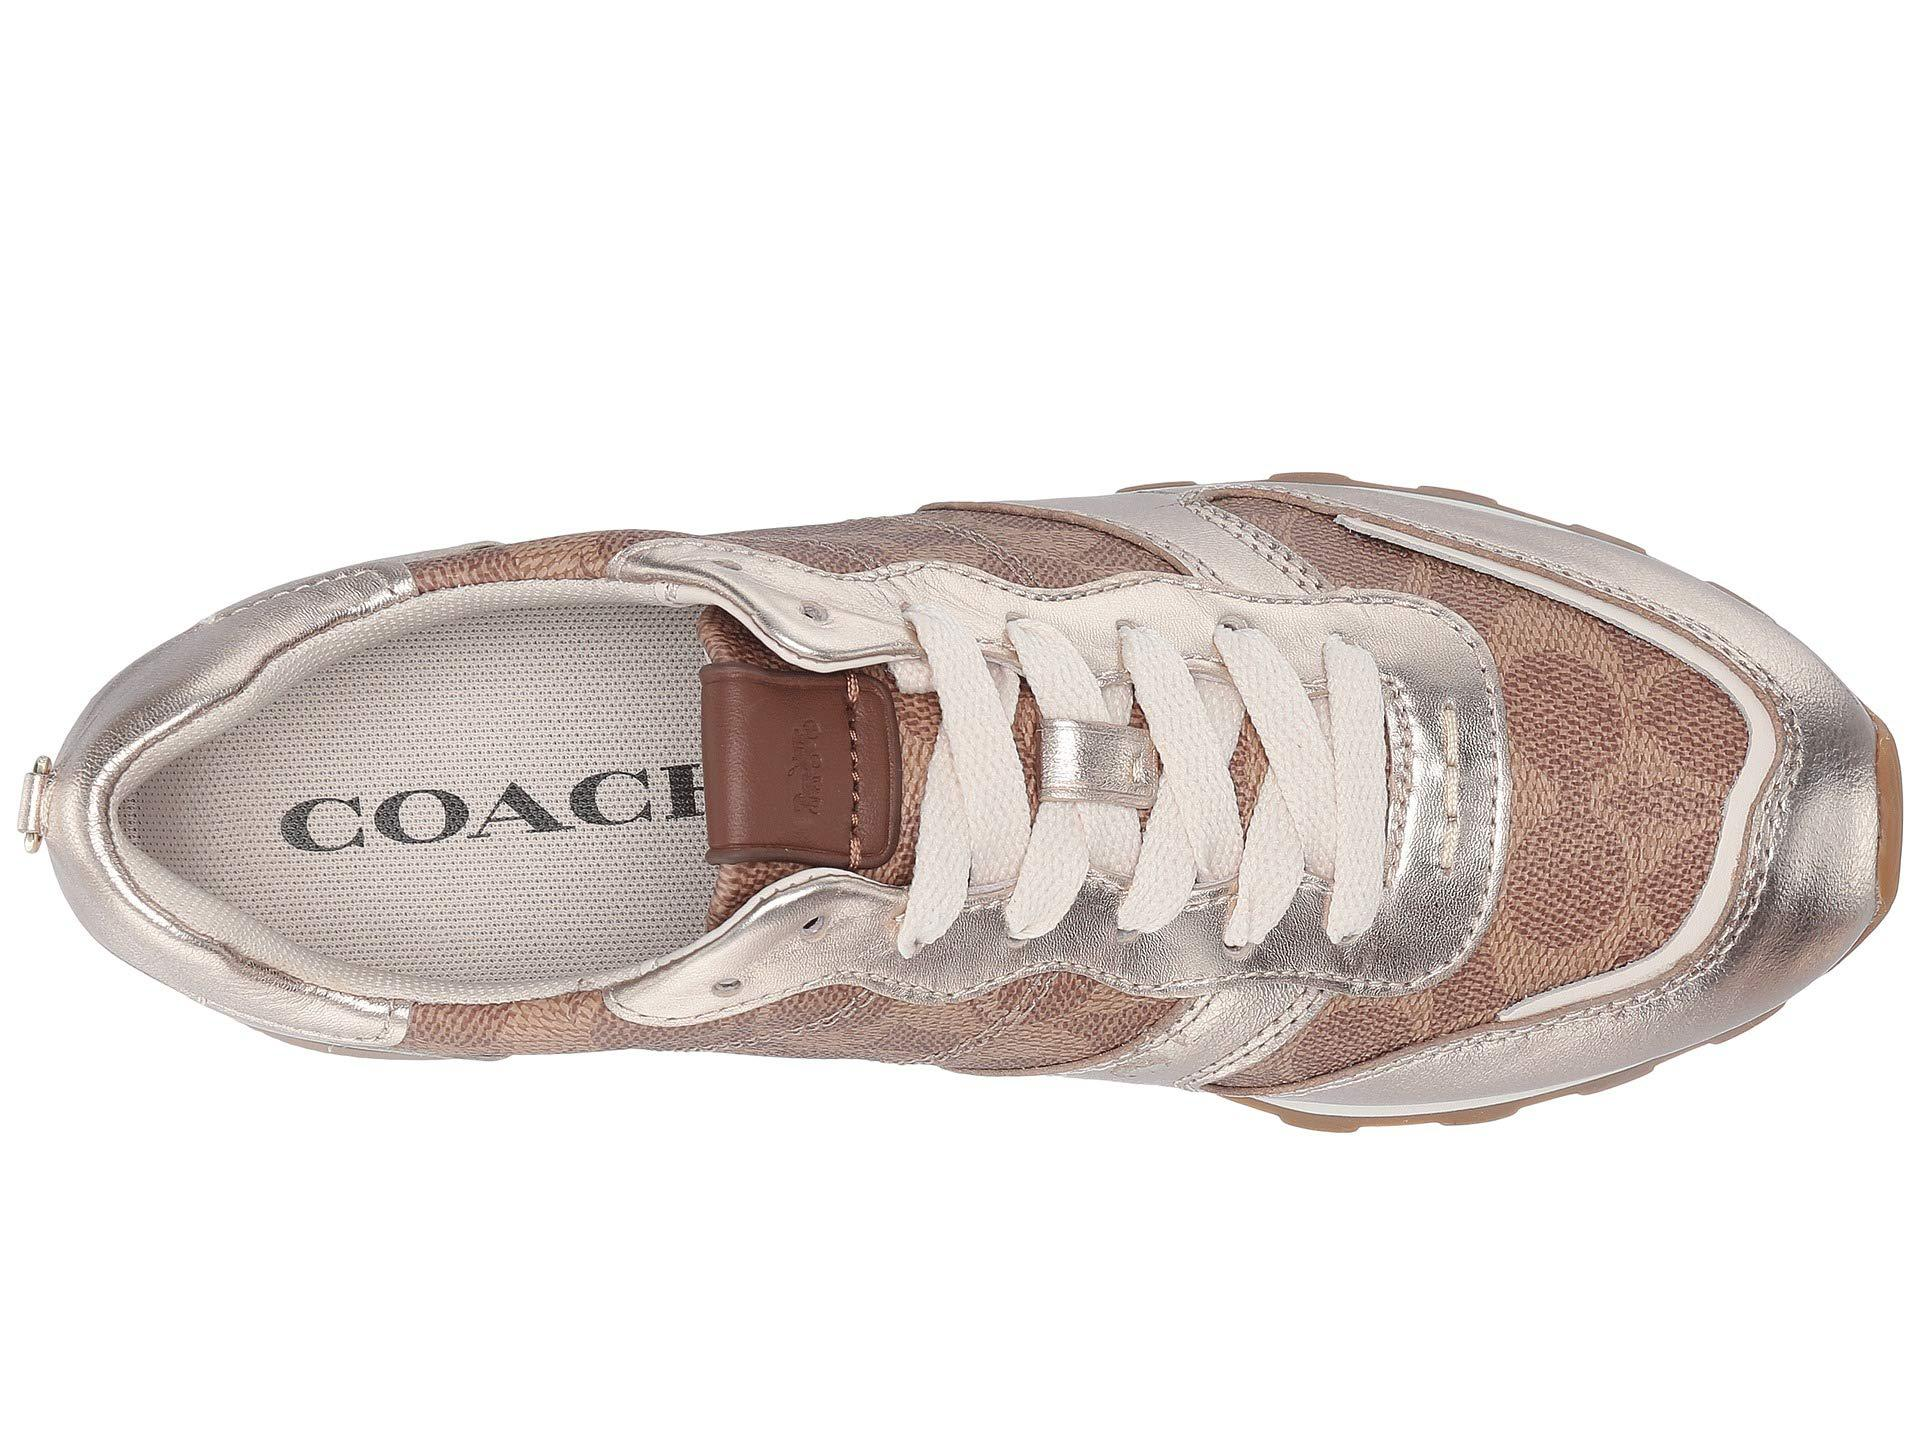 C118 Signature Coated Metallic Lyst With Coach Canvas Runner SqzMpUV